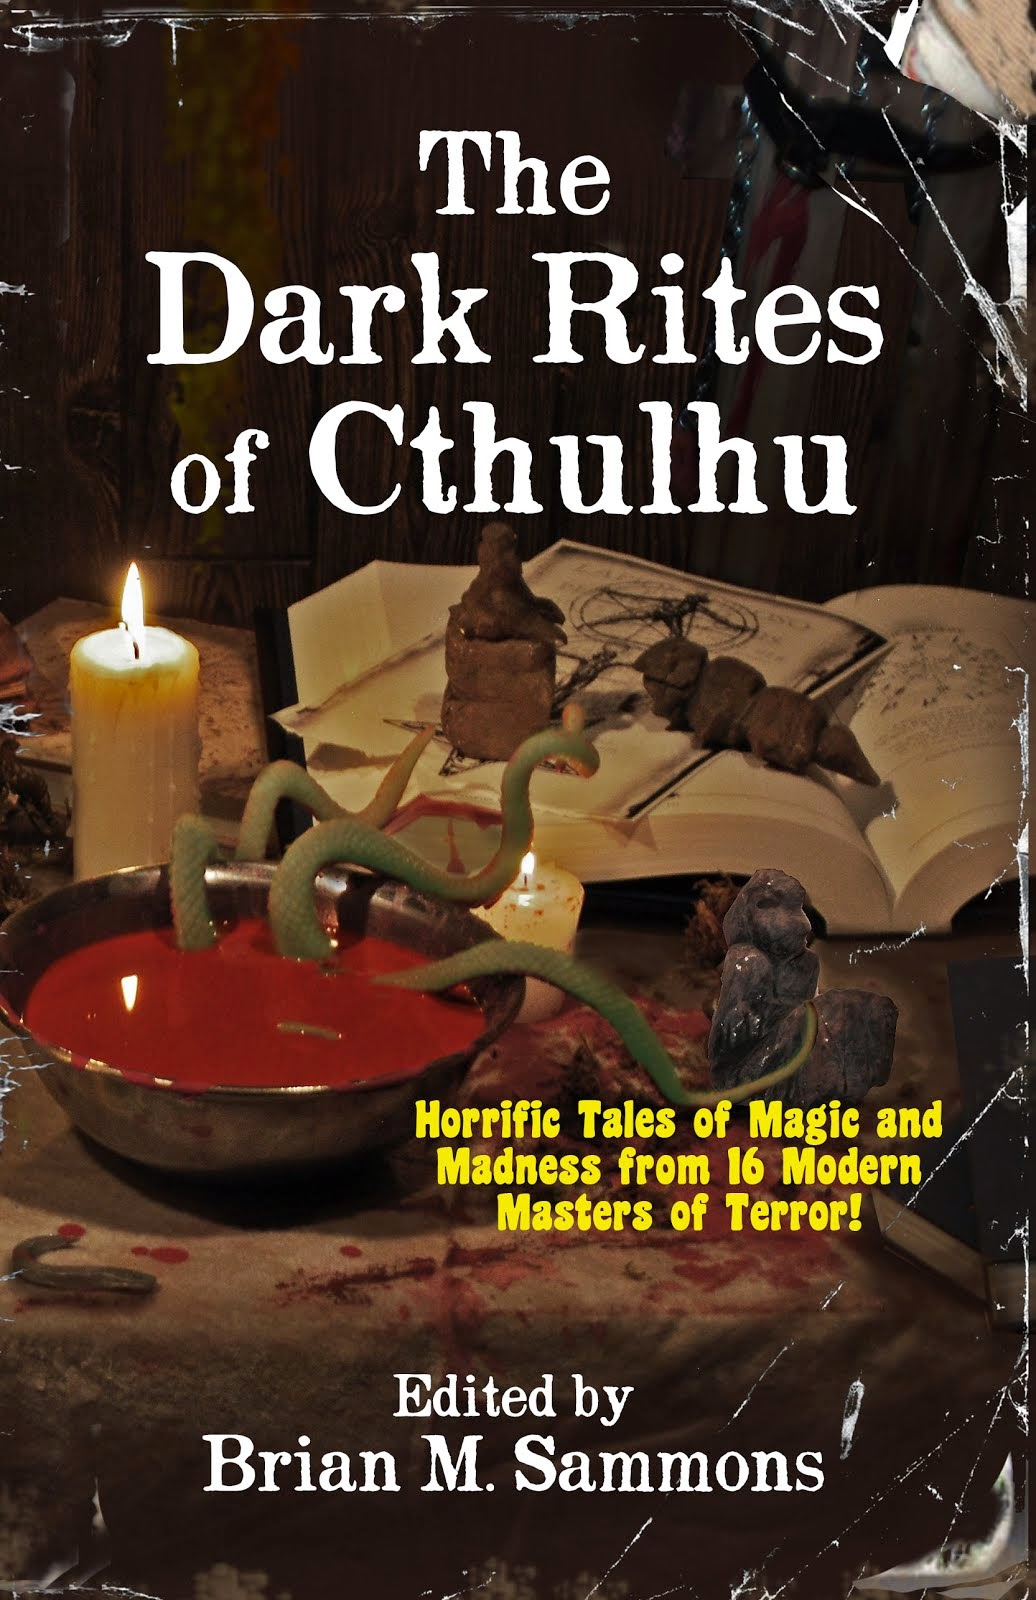 Profile Essay on Cthulhu?